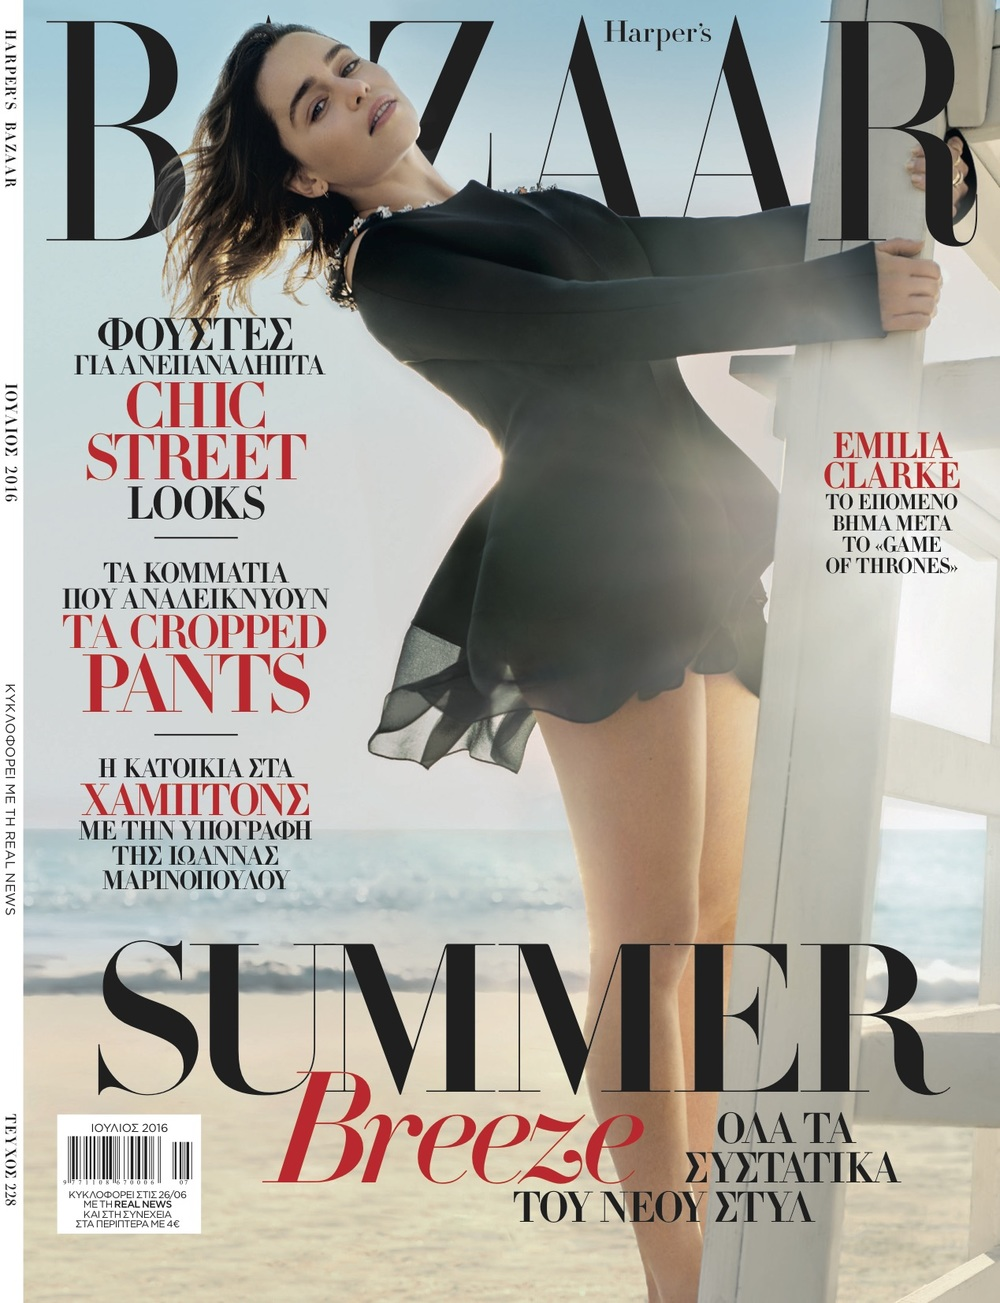 Harper's Bazaar July 2016